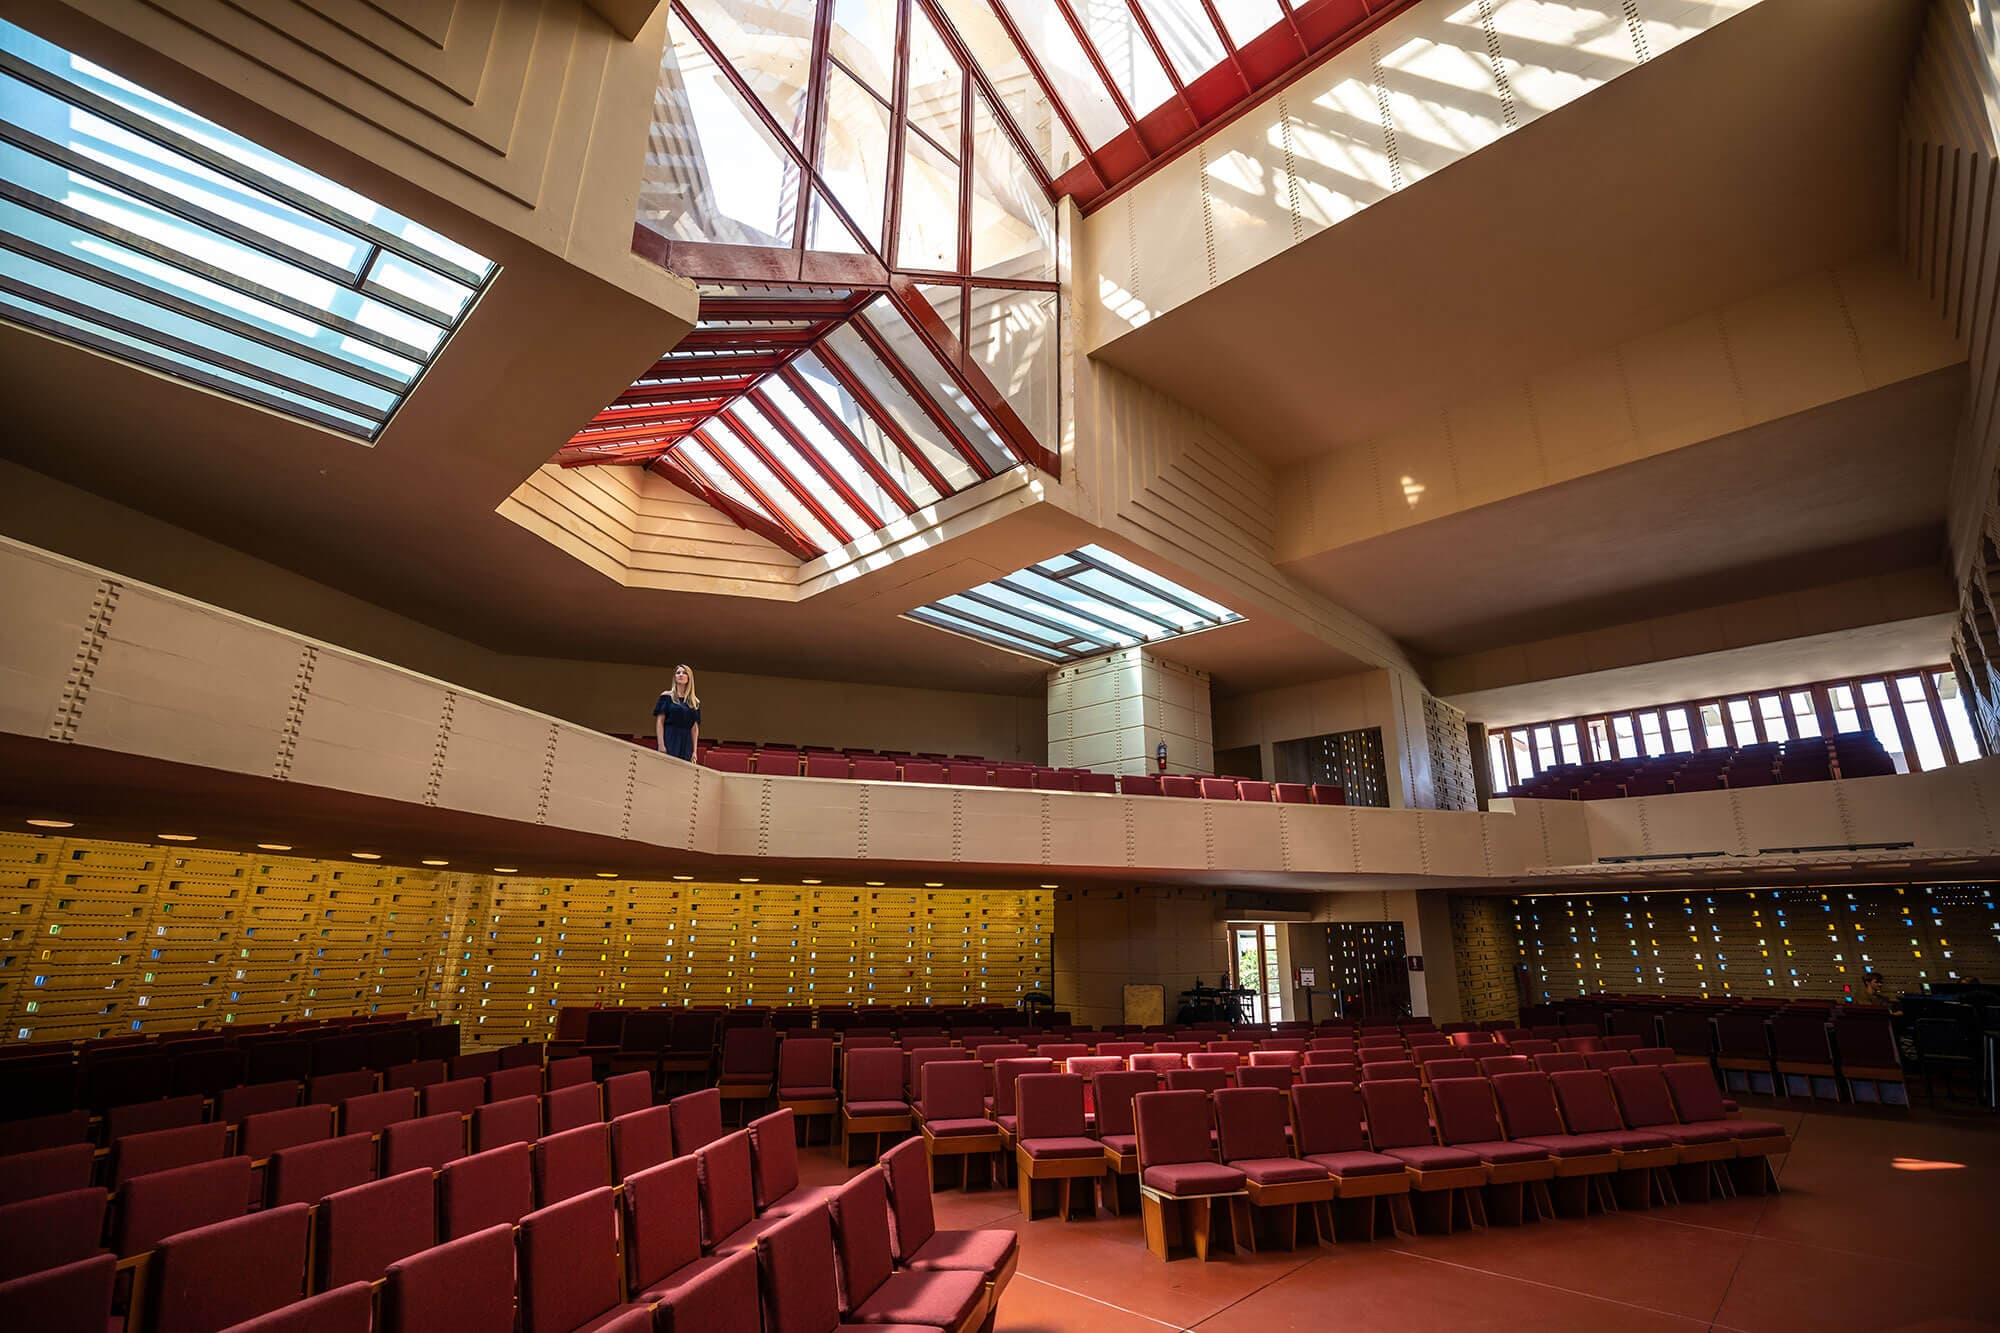 Inside Frank Lloyd Wright's Annie Pfeiffer Chapel at Florida Southern College in Lakeland, FL. Woman standing in balcony seating area.